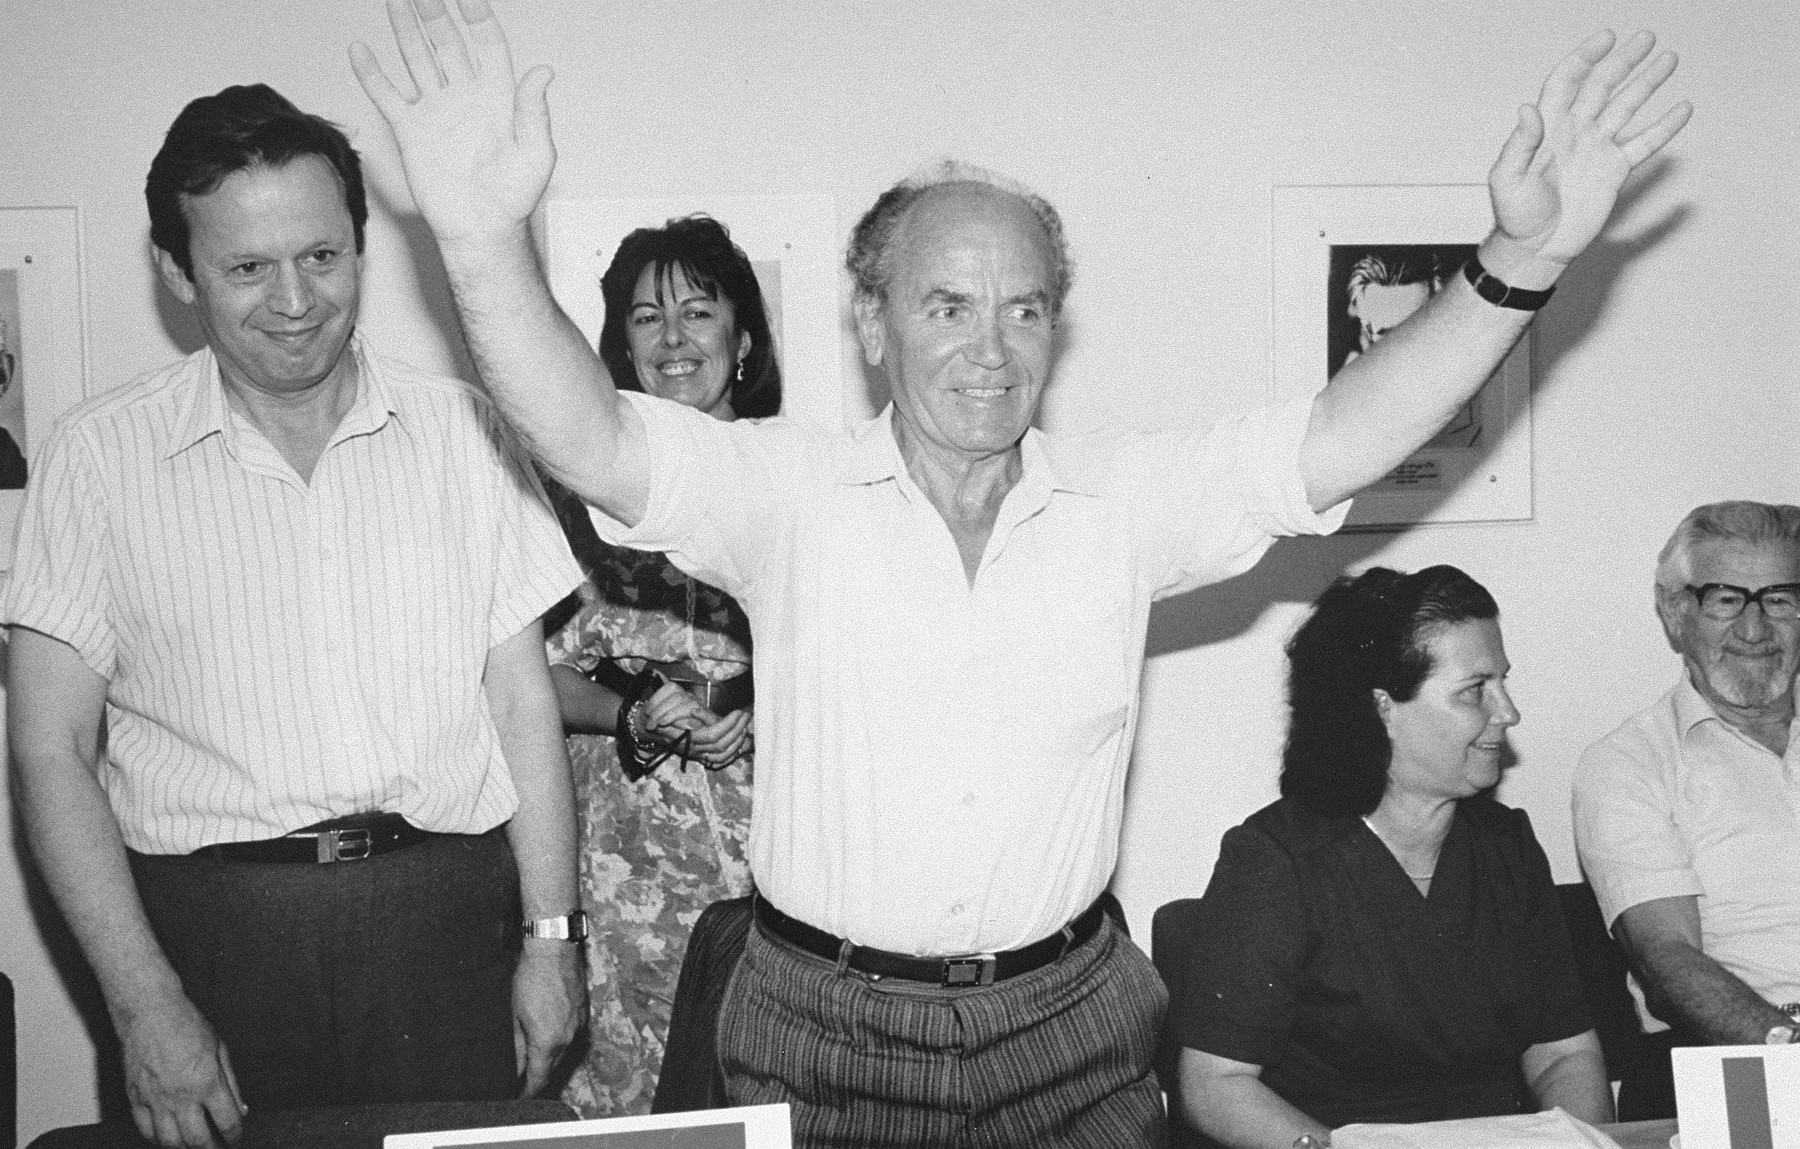 Refik Veseli, (1927--), the Albanian rescuer who sheltered the family of Gavra Mandil, at the award ceremony at Yad Vashem.  In 1990 Refik Veseli was recognized by Yad Vashem as one of the Righteous Among the Nations.